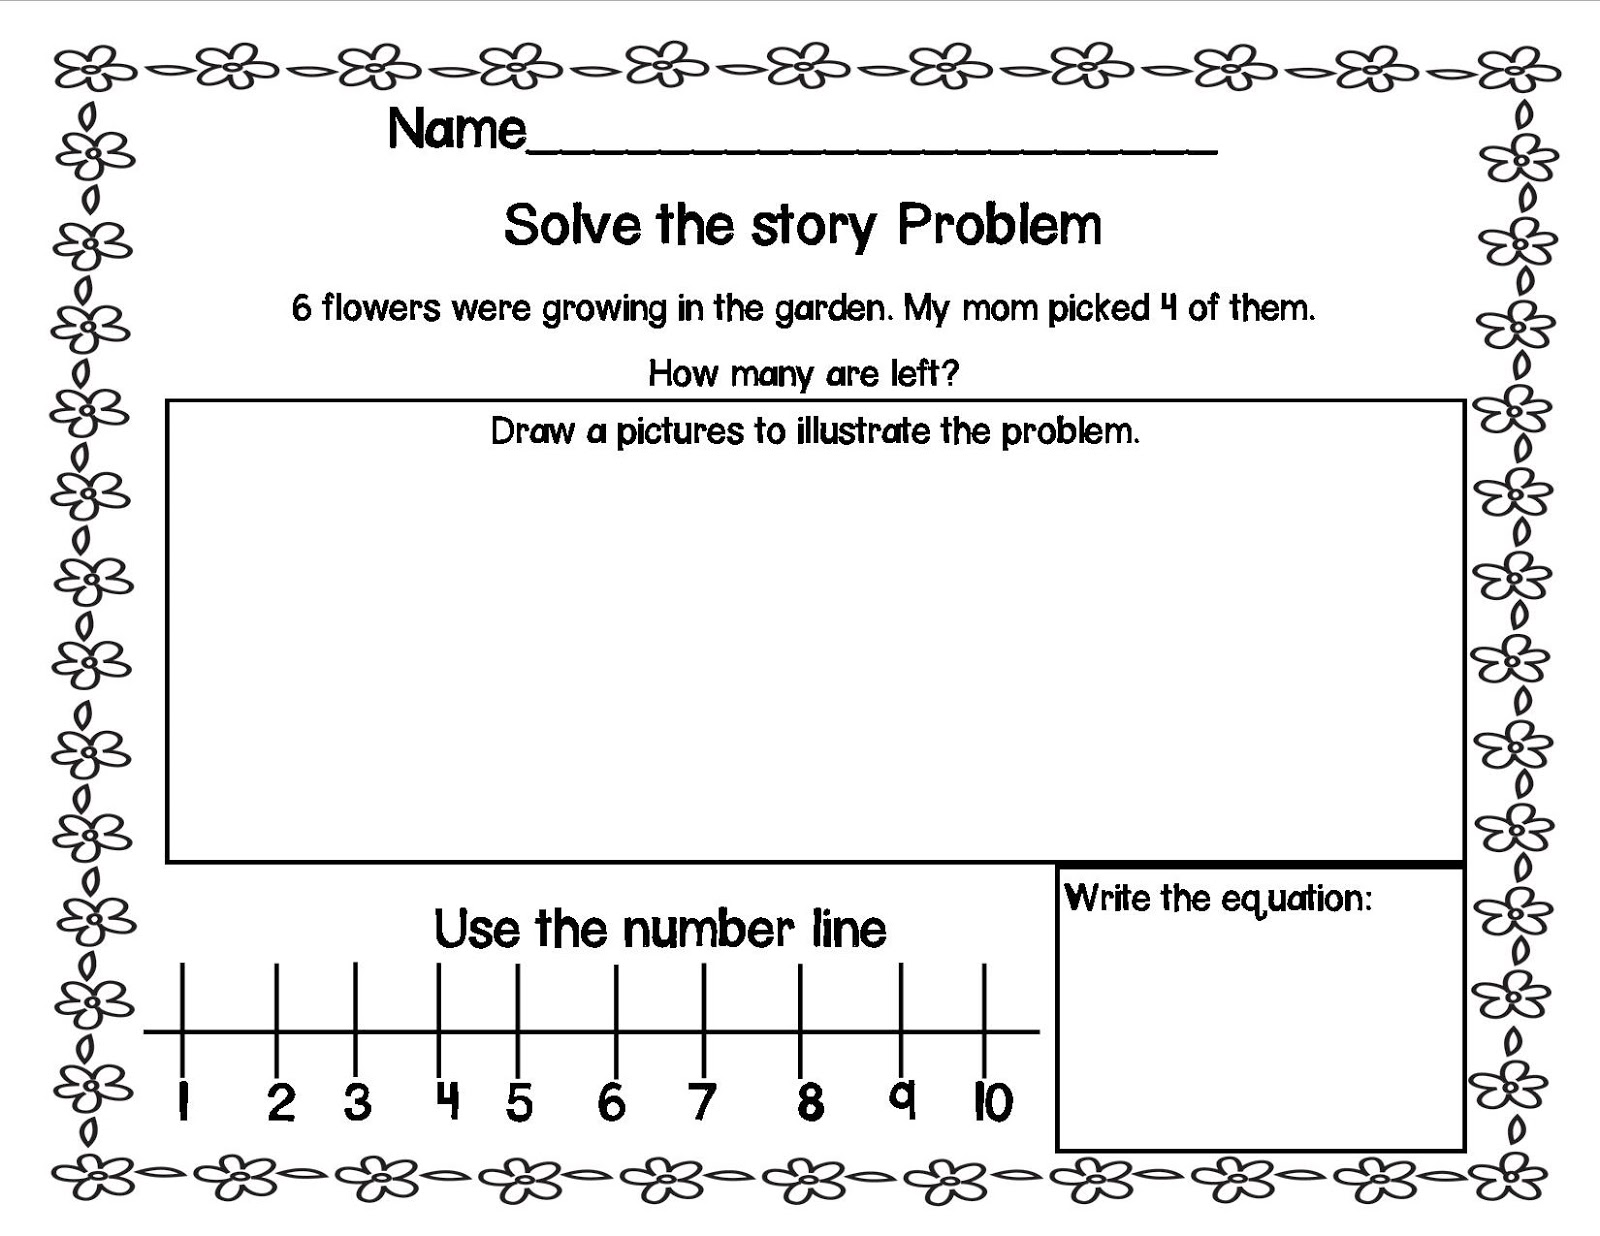 spring+subtraction3 Take Away Math Problems Kindergarten on common core sample, addition story, homework word, solving questions, solving activity, for pre,